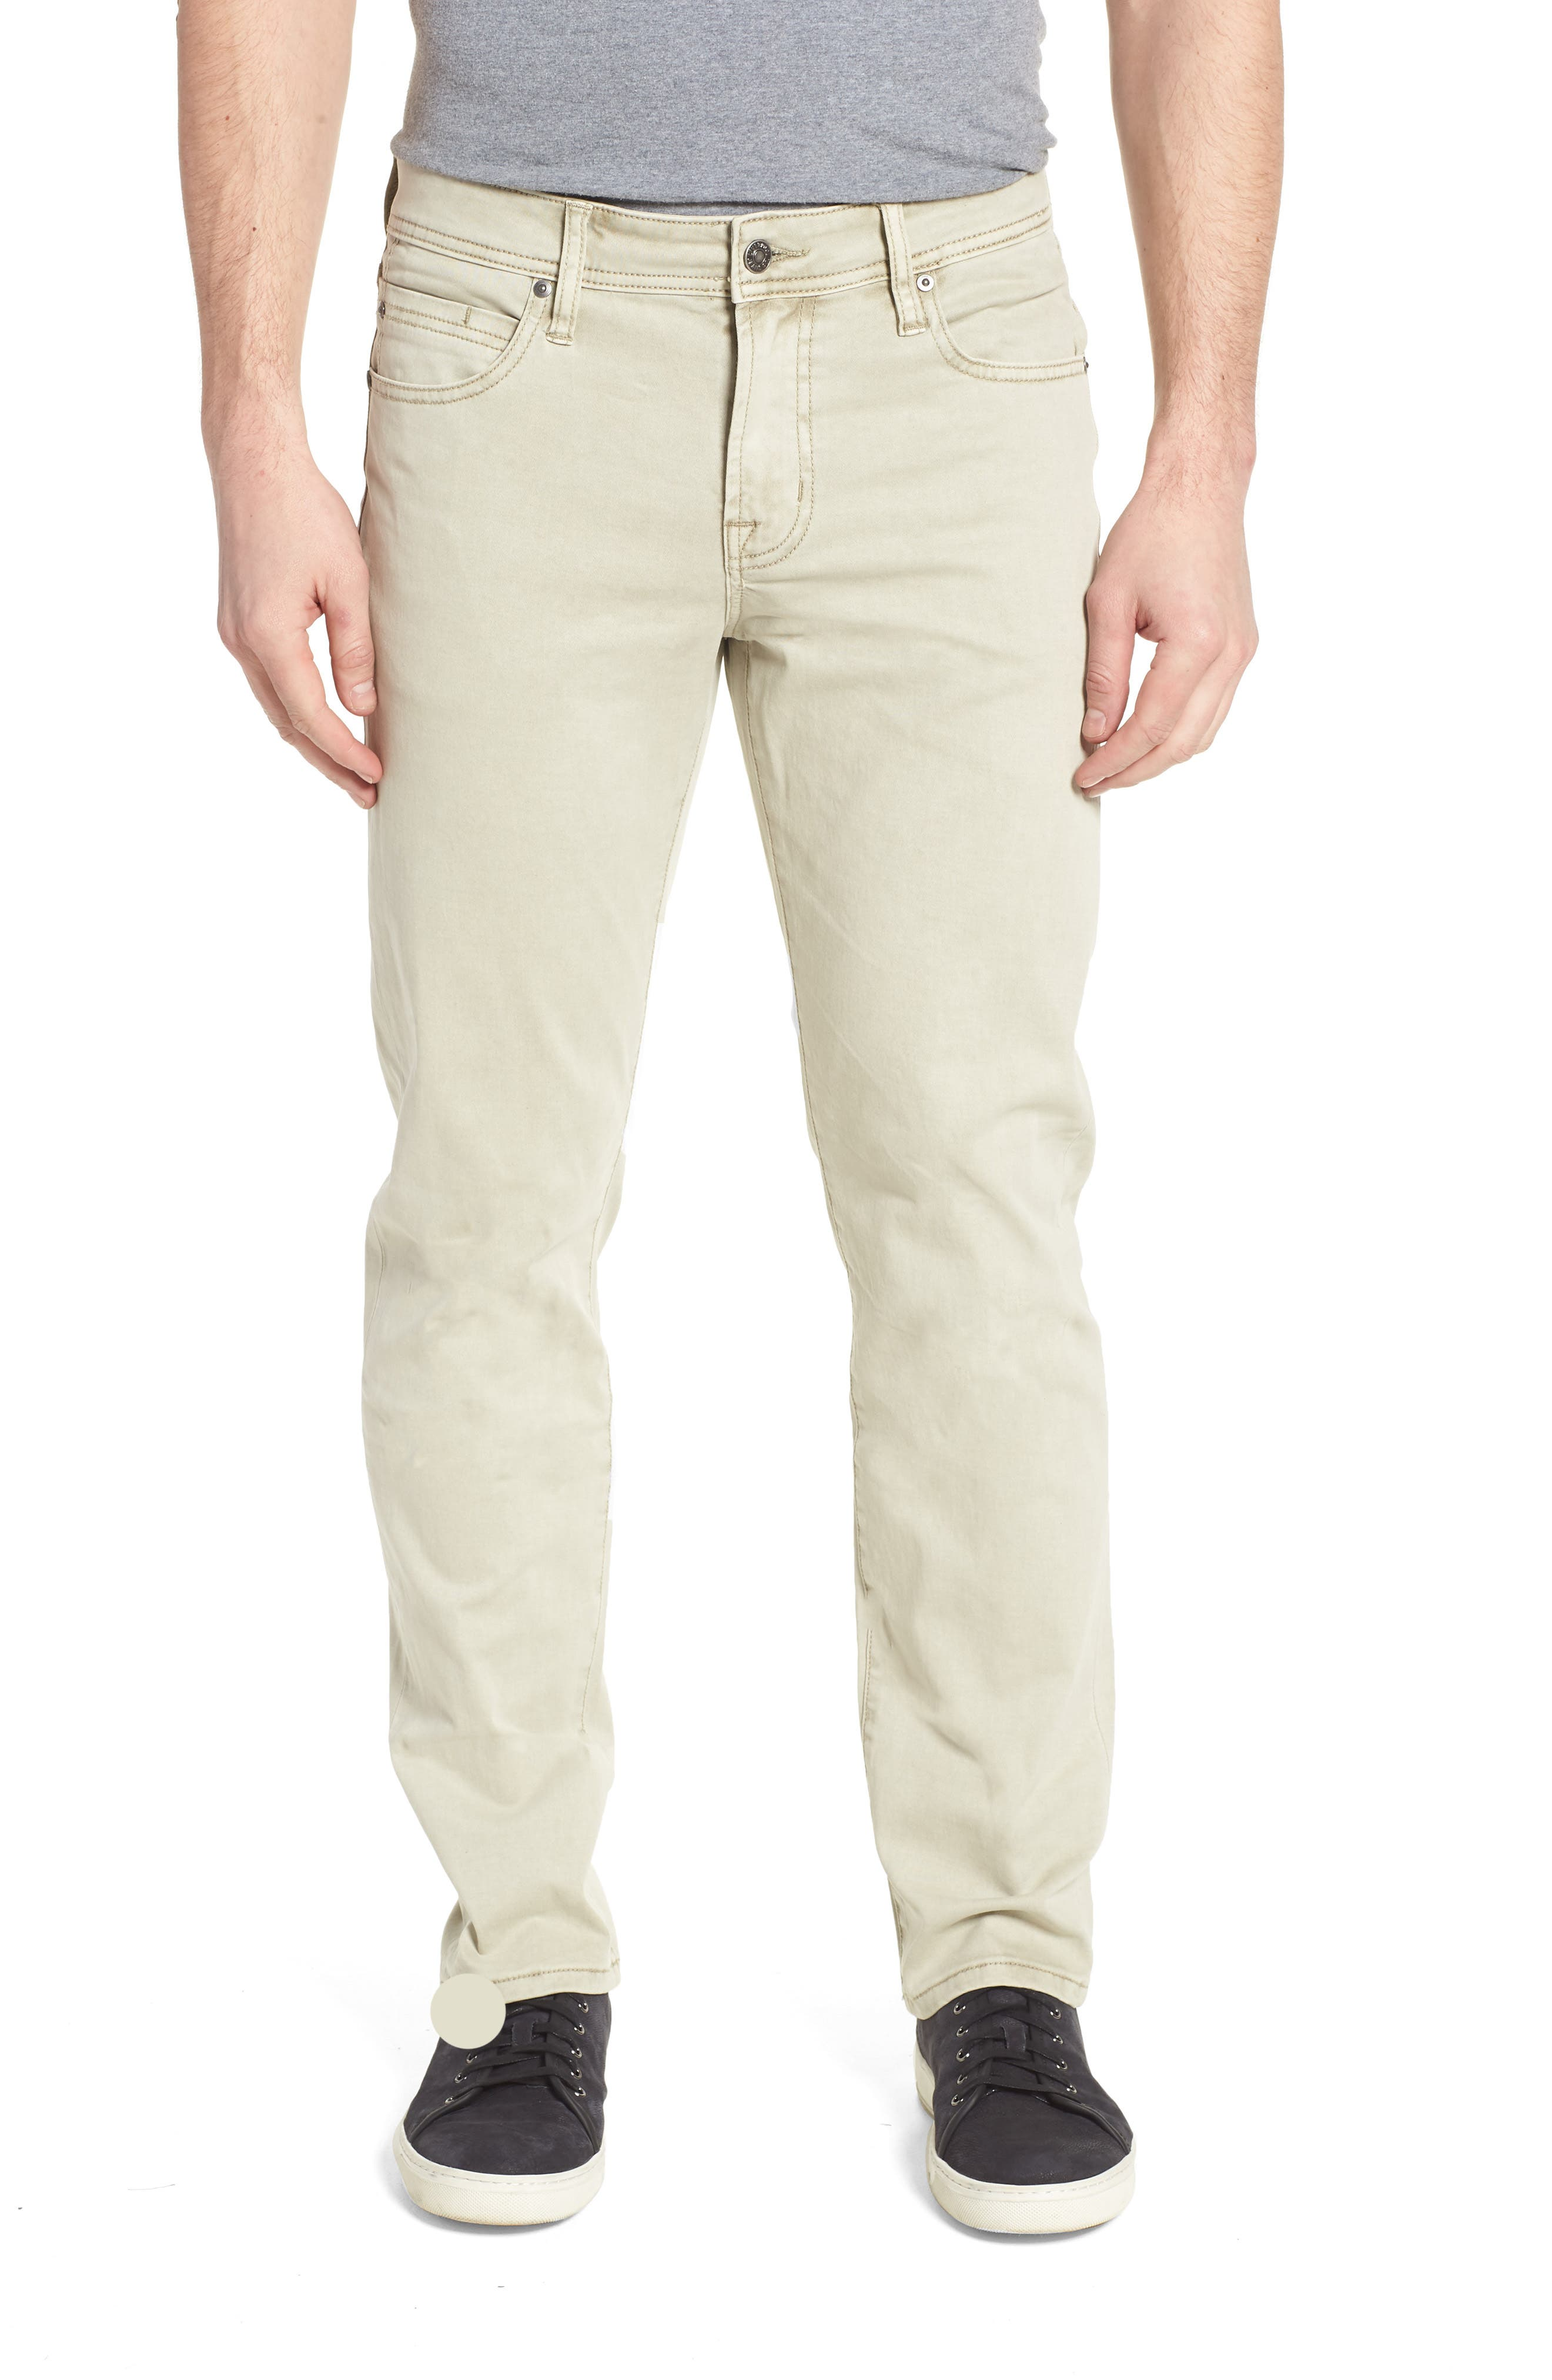 Jeans Co. Regent Relaxed Fit Straight Leg Jeans,                         Main,                         color, SANDSTROM